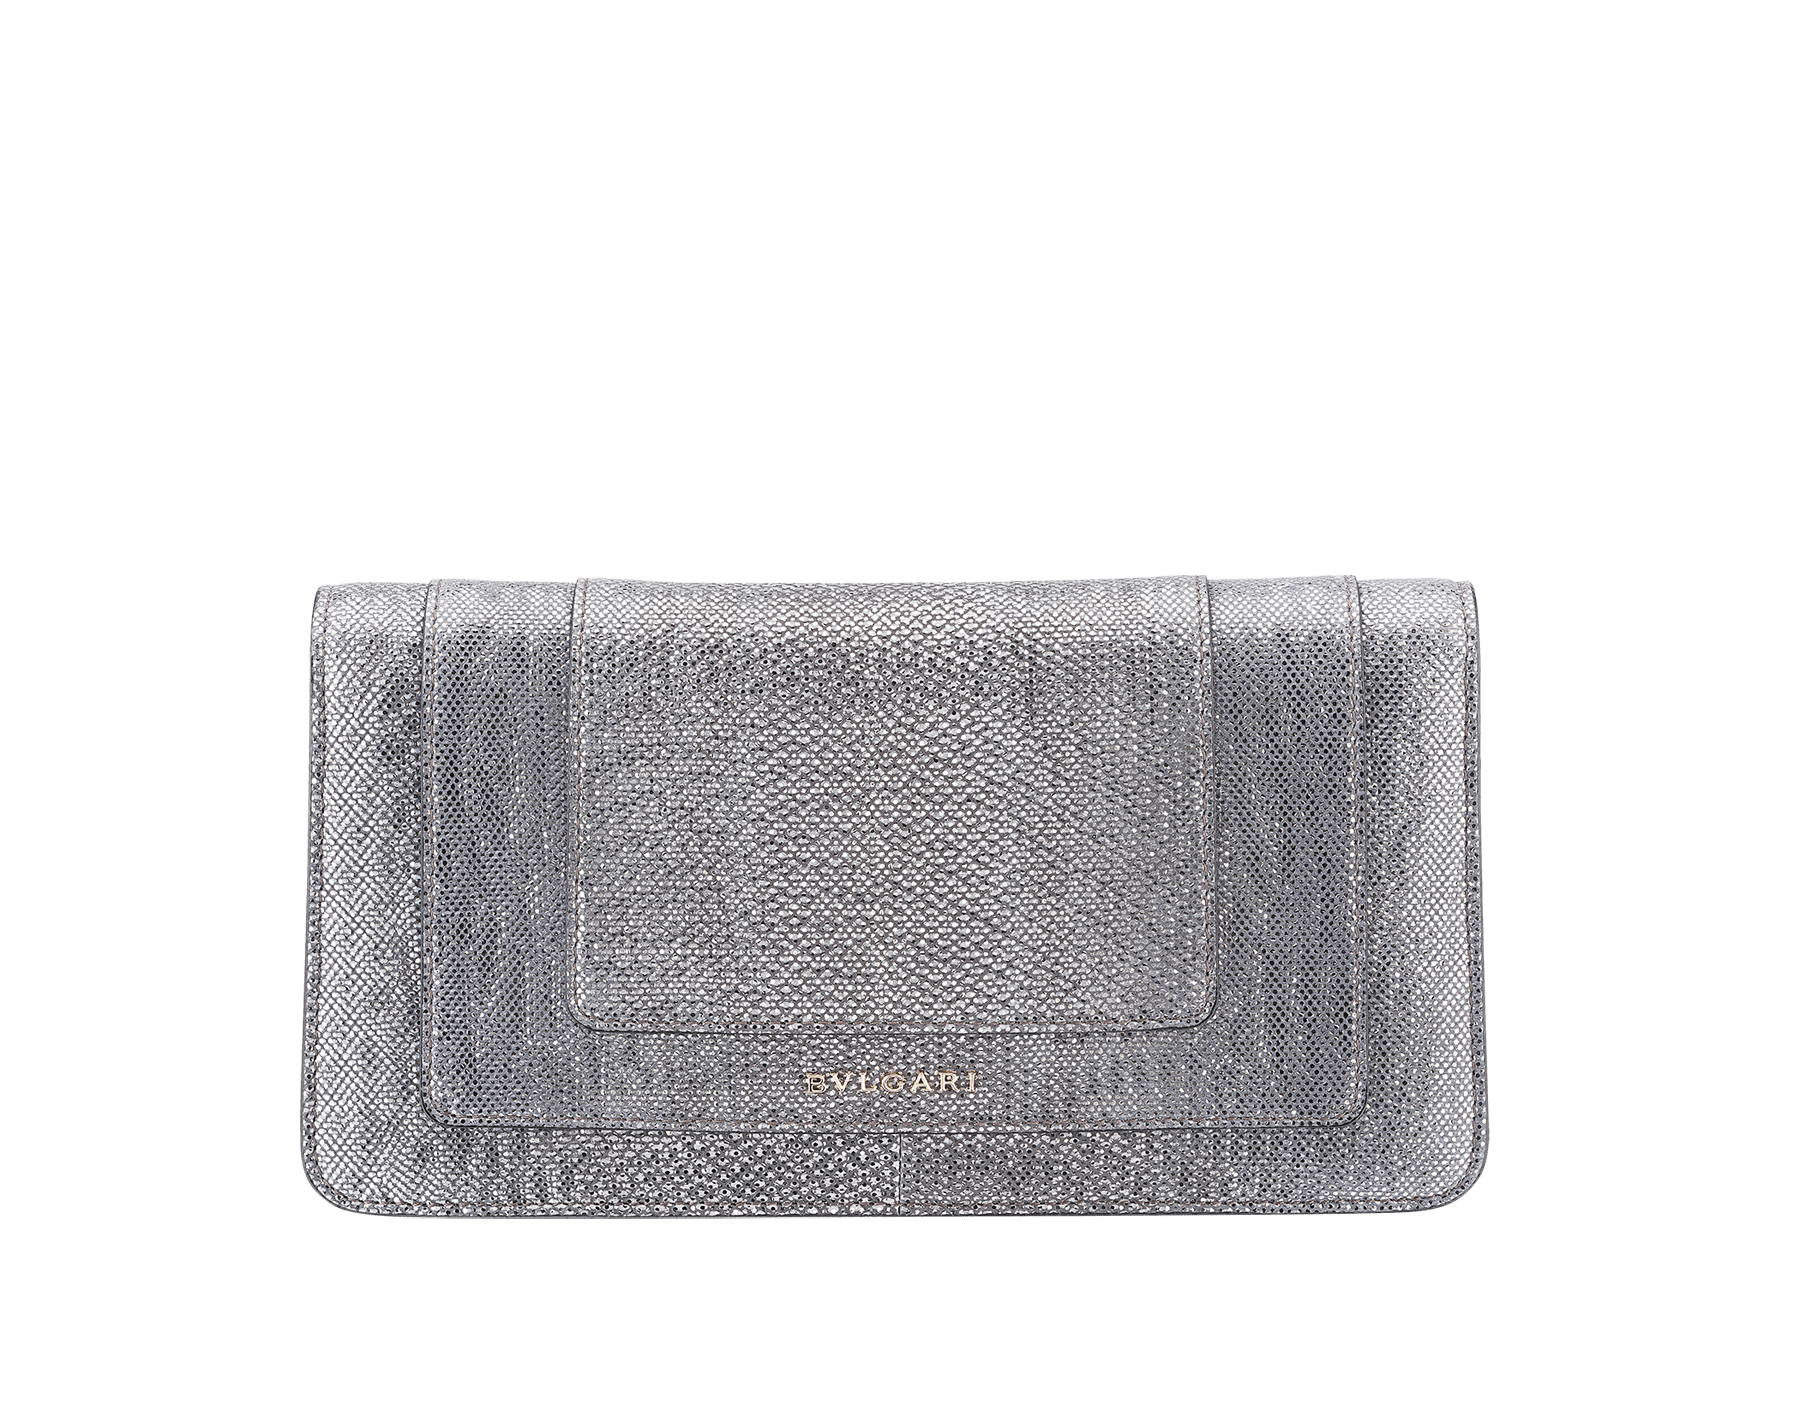 Serpenti Forever shoulder bag in charcoal diamond metallic karung skin. Snakehead closure in light gold plated brass decorated with shiny black and glitter charcoal diamond enamel, and black onyx eyes. 287945 image 3